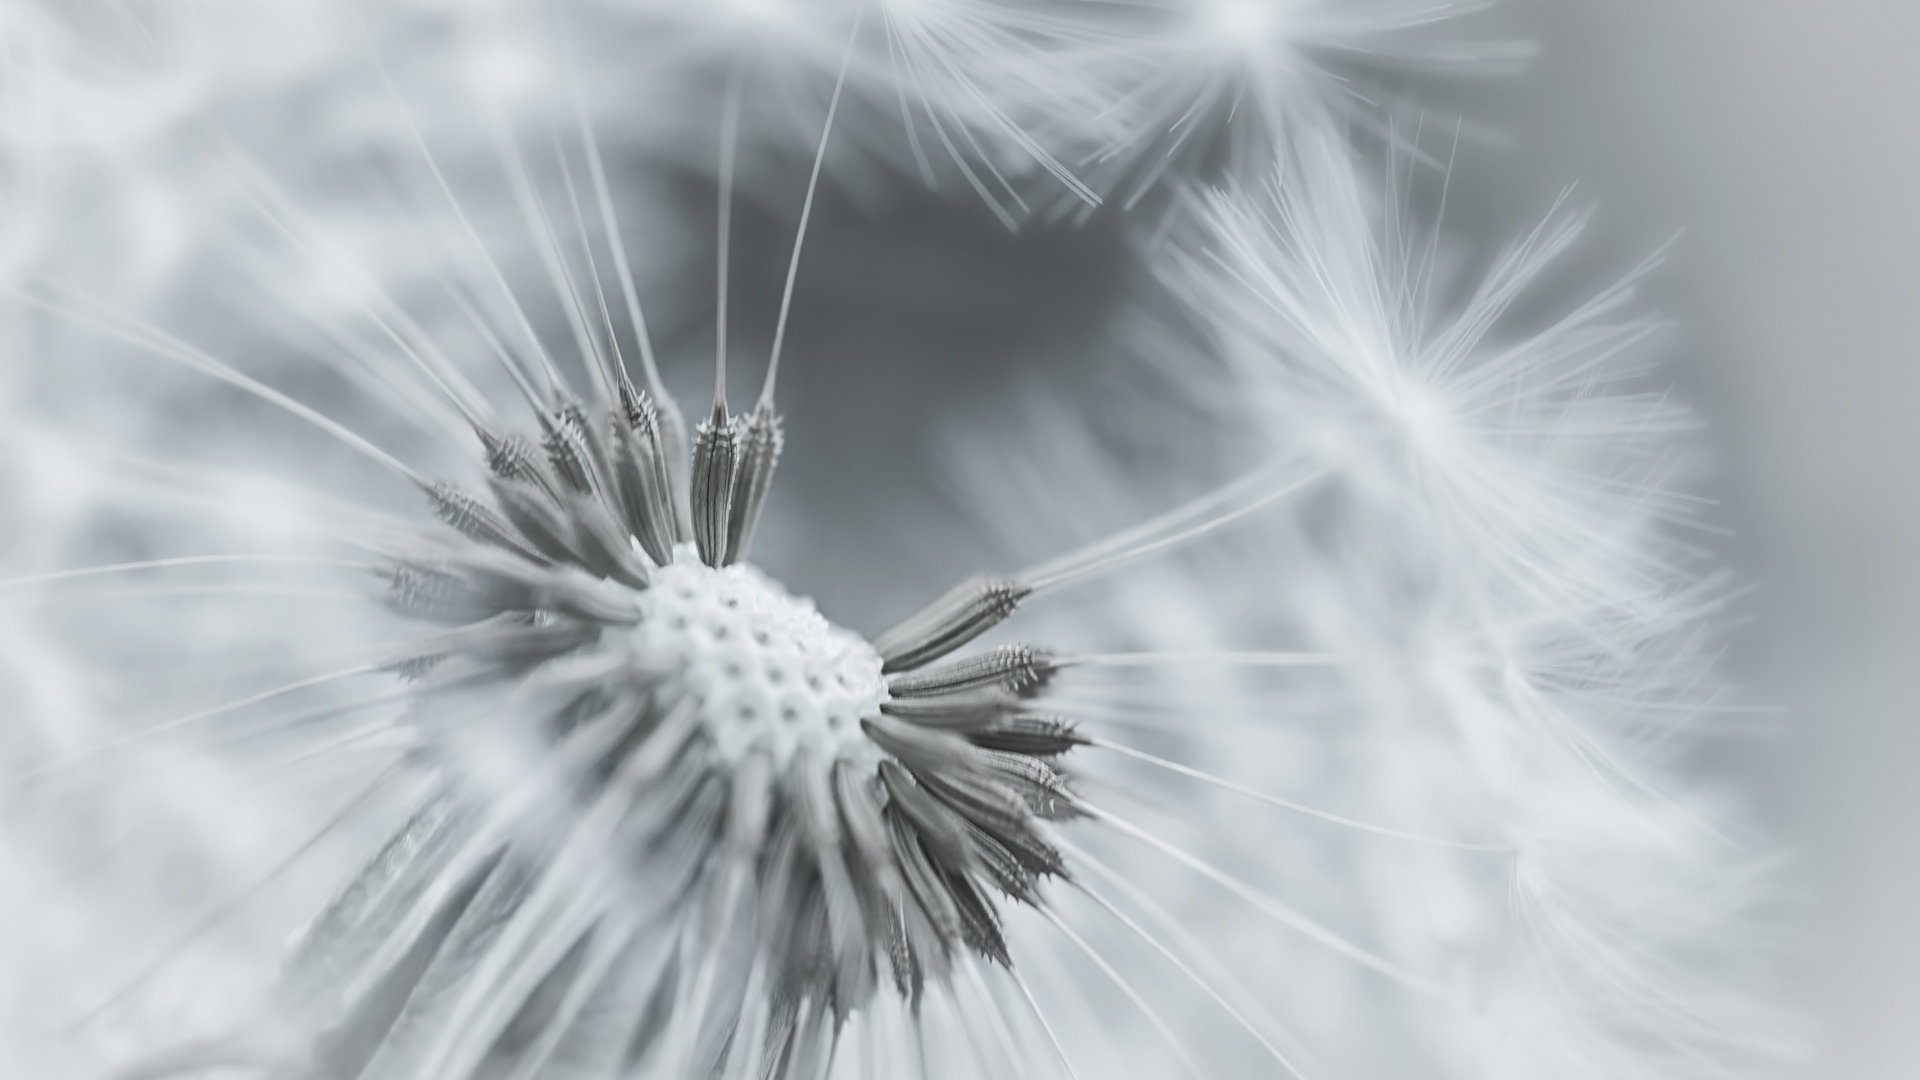 dandelion seeds wallpaper 42633